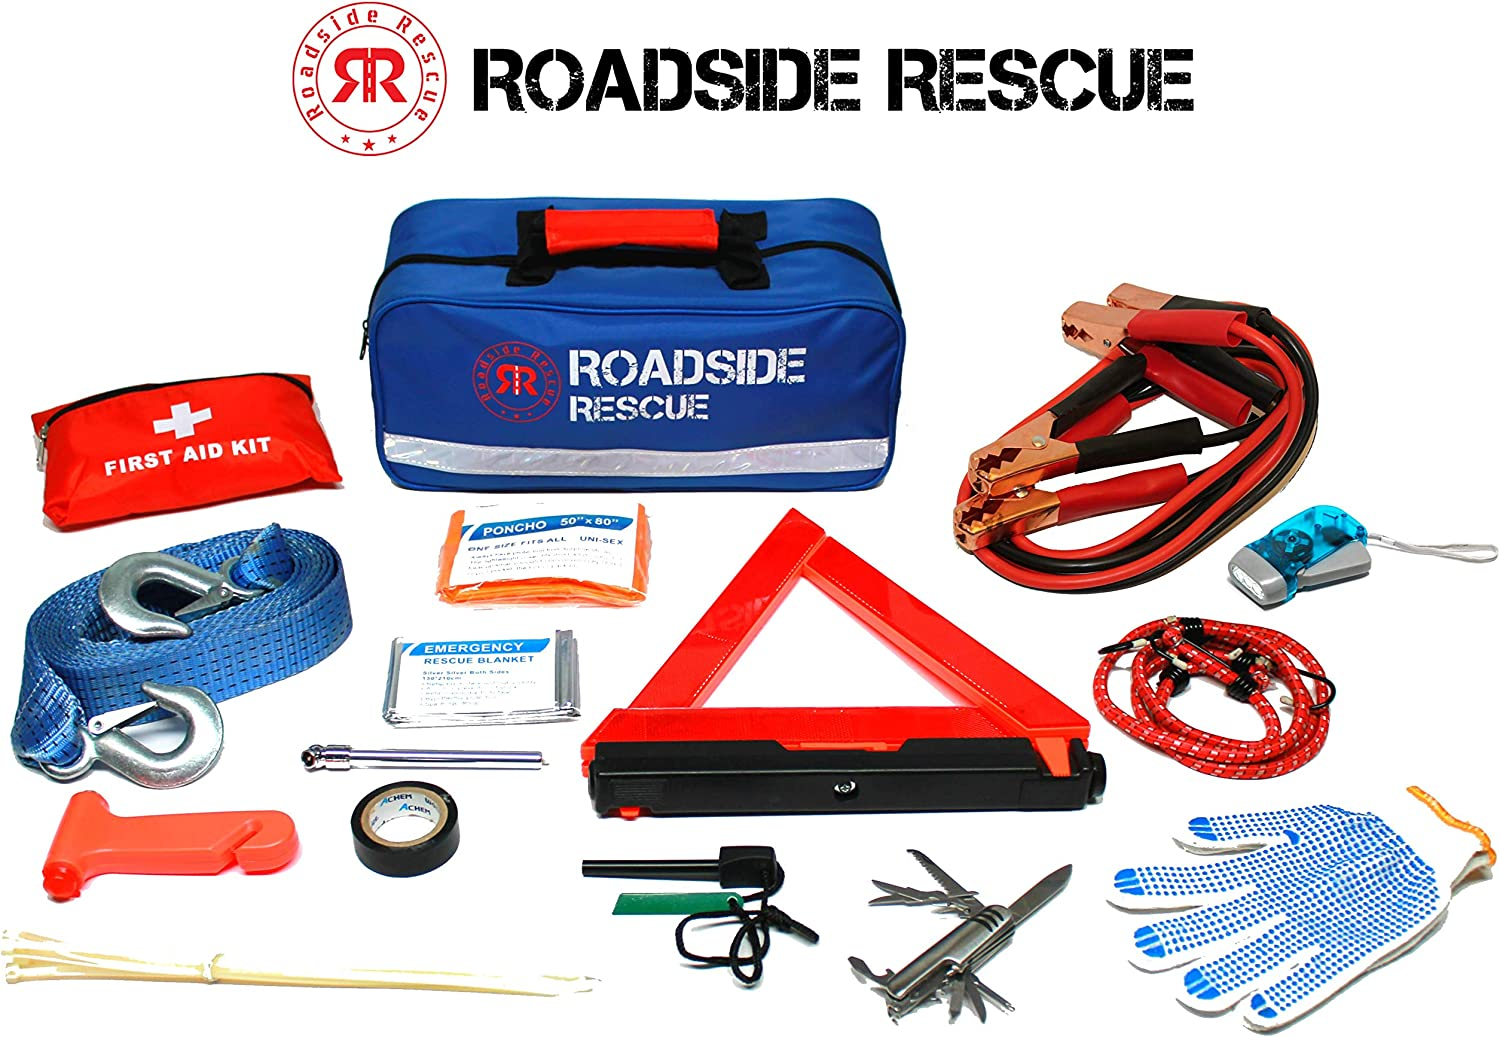 Product factory rescue kits, tools, appliances